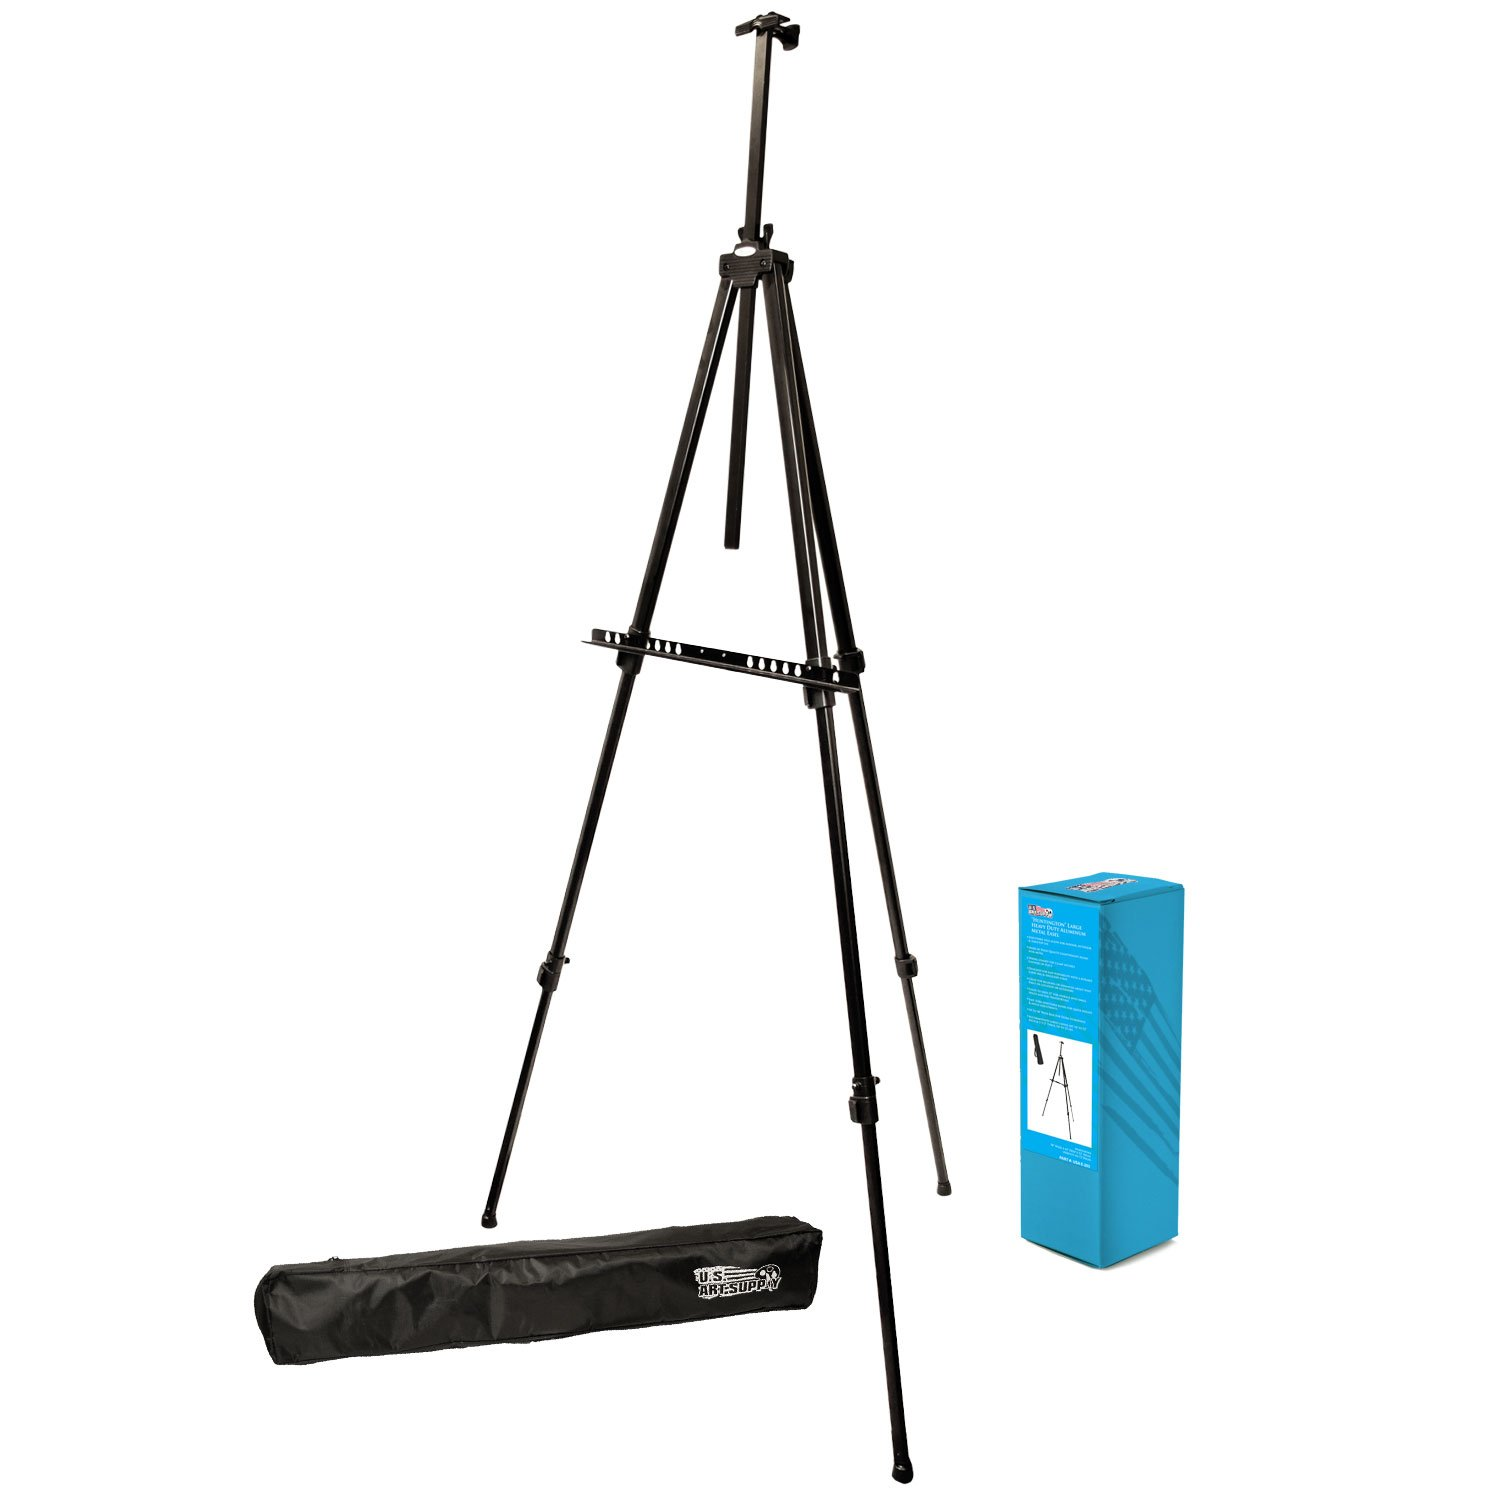 US Art Supply Big Sur 80 inch X-Large Aluminum Tripod Field and Display Easel 1-Easel